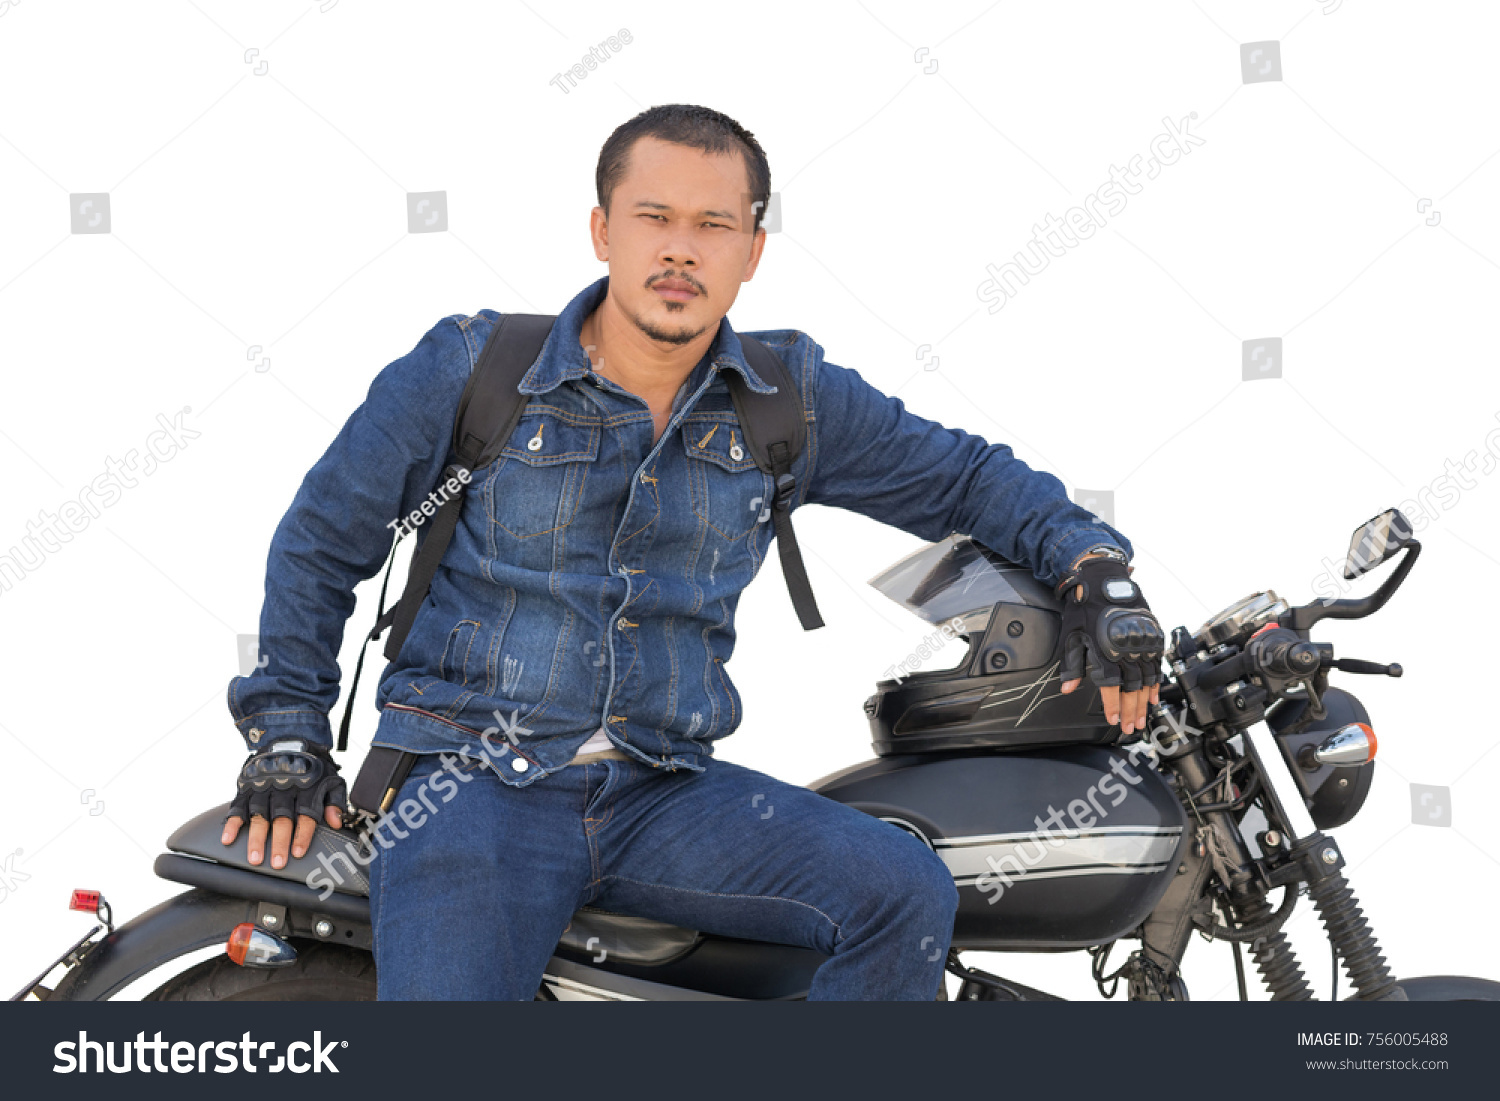 Asian guy riding a motorcycle on a black classic model on a white background